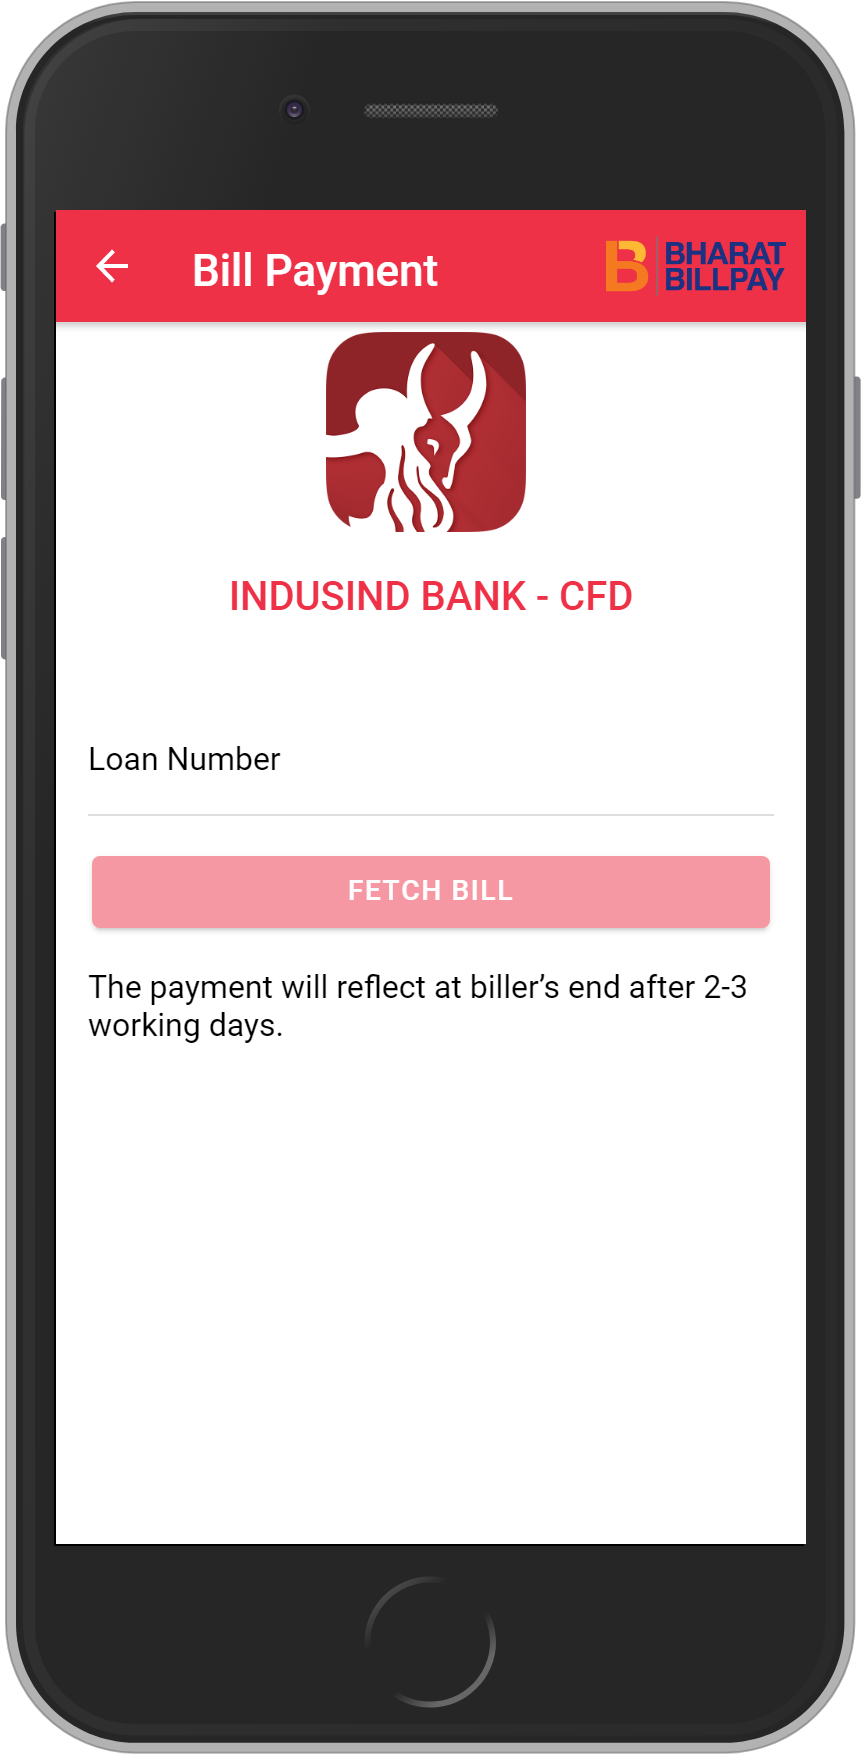 Get UNLIMITED <b>0.1%</b> CASHBACK on INDUSIND BANK – CFD Loan Payment.